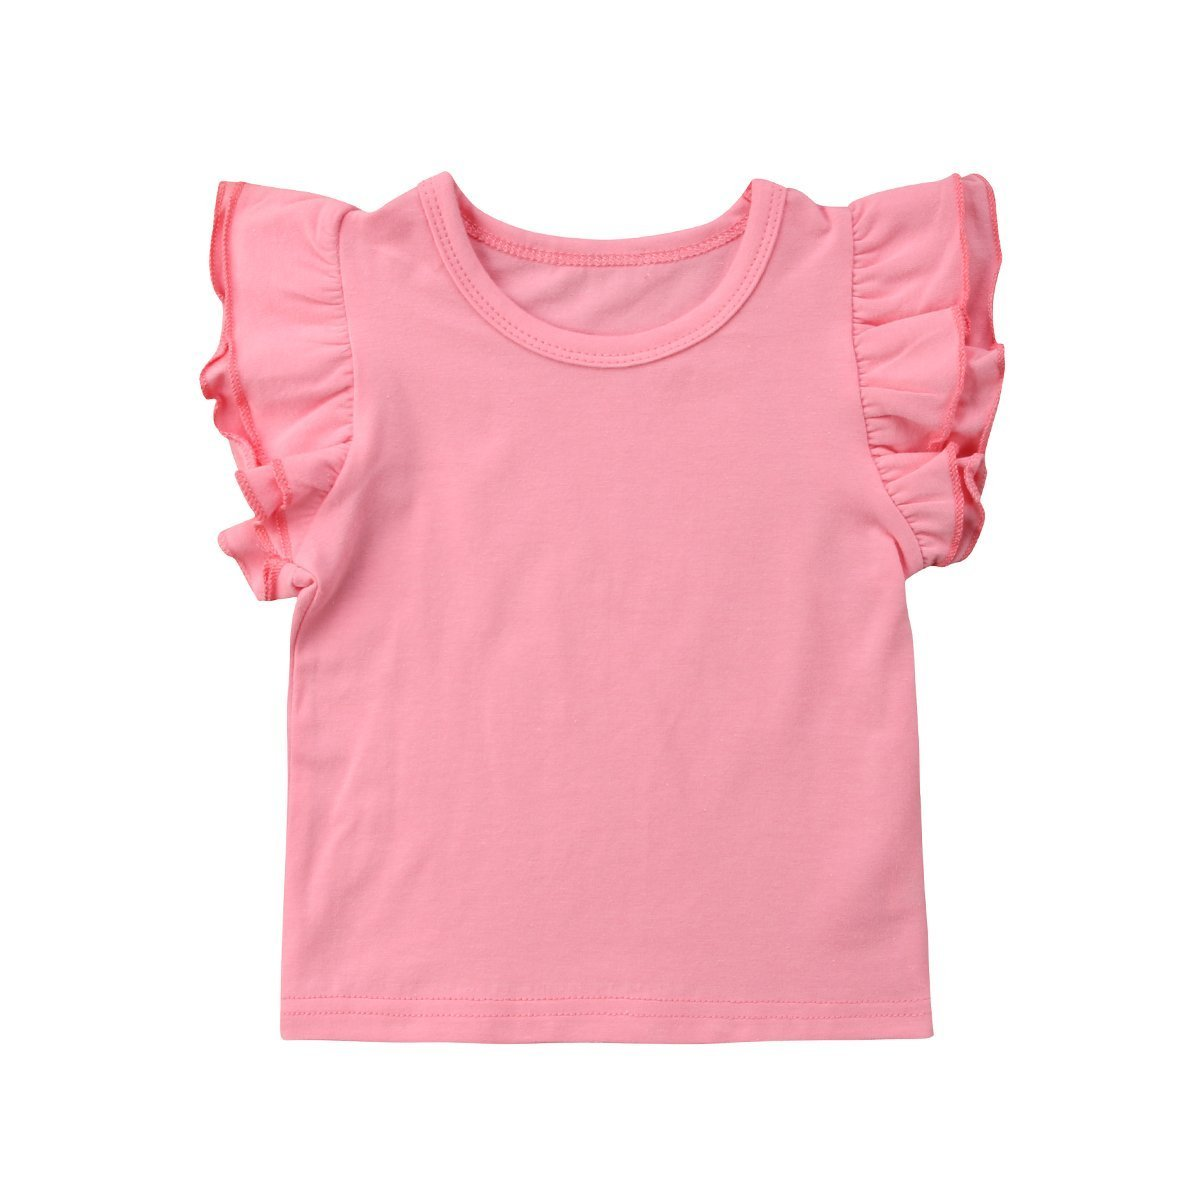 ce1c8eb020e Calsunbaby Infant Toddler Baby Girl Top Basic Plain Ruffle T-Shirt ...